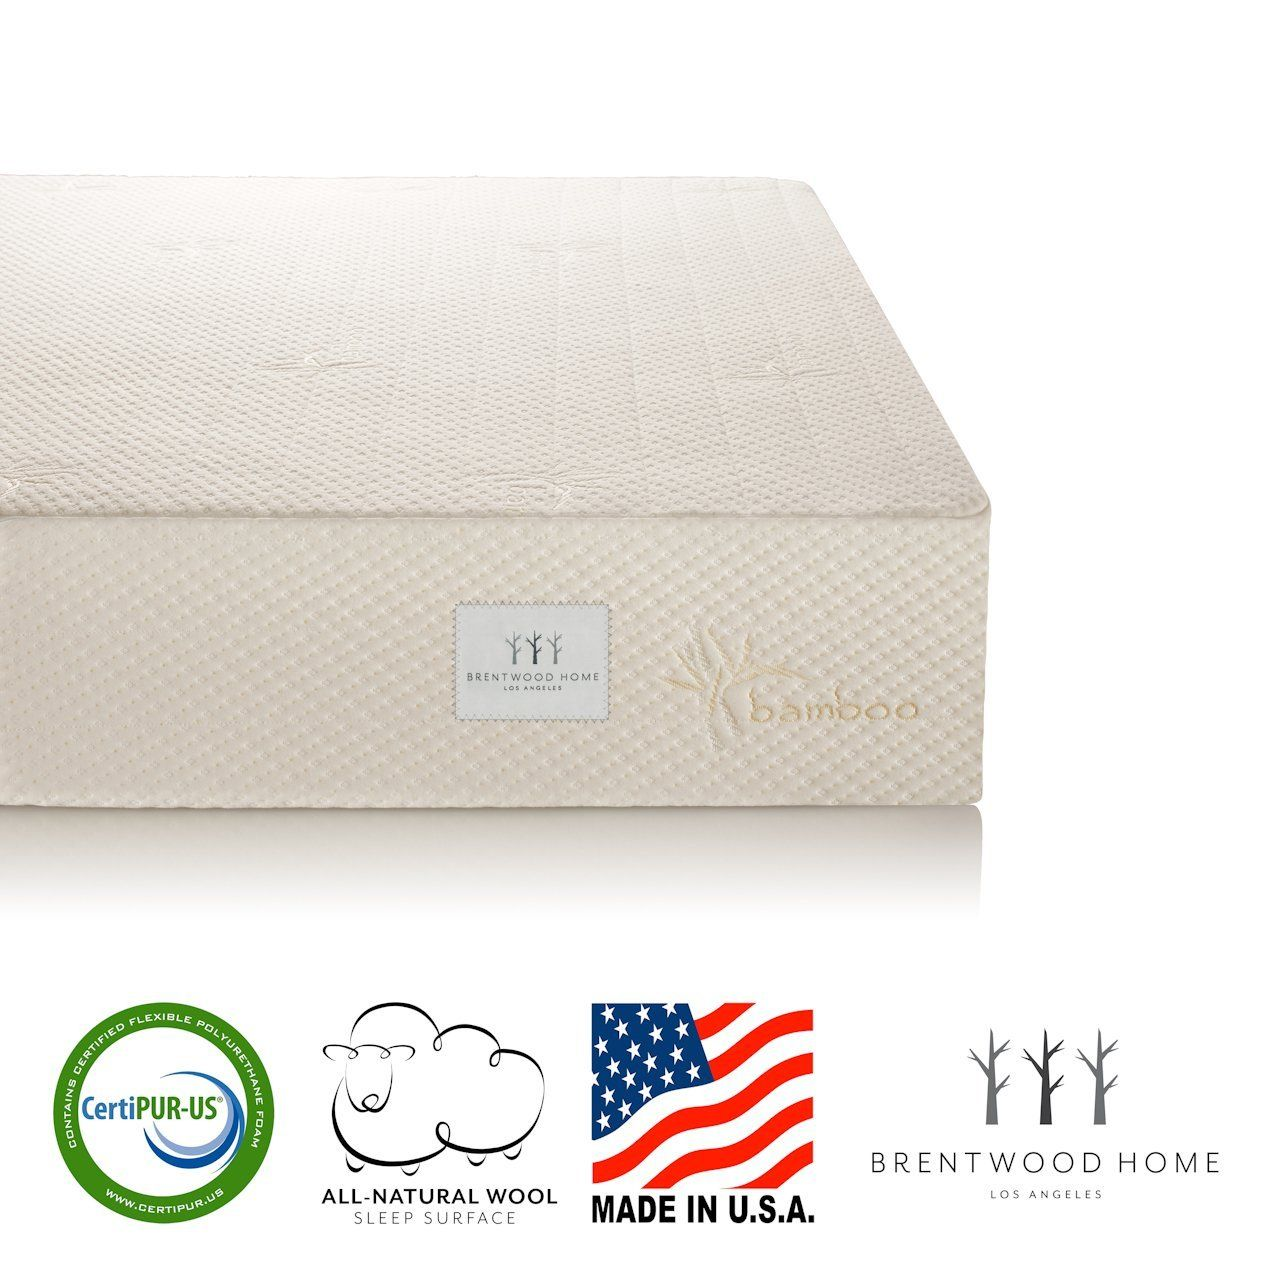 Special Offer What Are The Features Of Bwood Home Bamboo Gel 10 Memory Foam Mattress Made In Usa Rv Thick With Infused Hd Memo